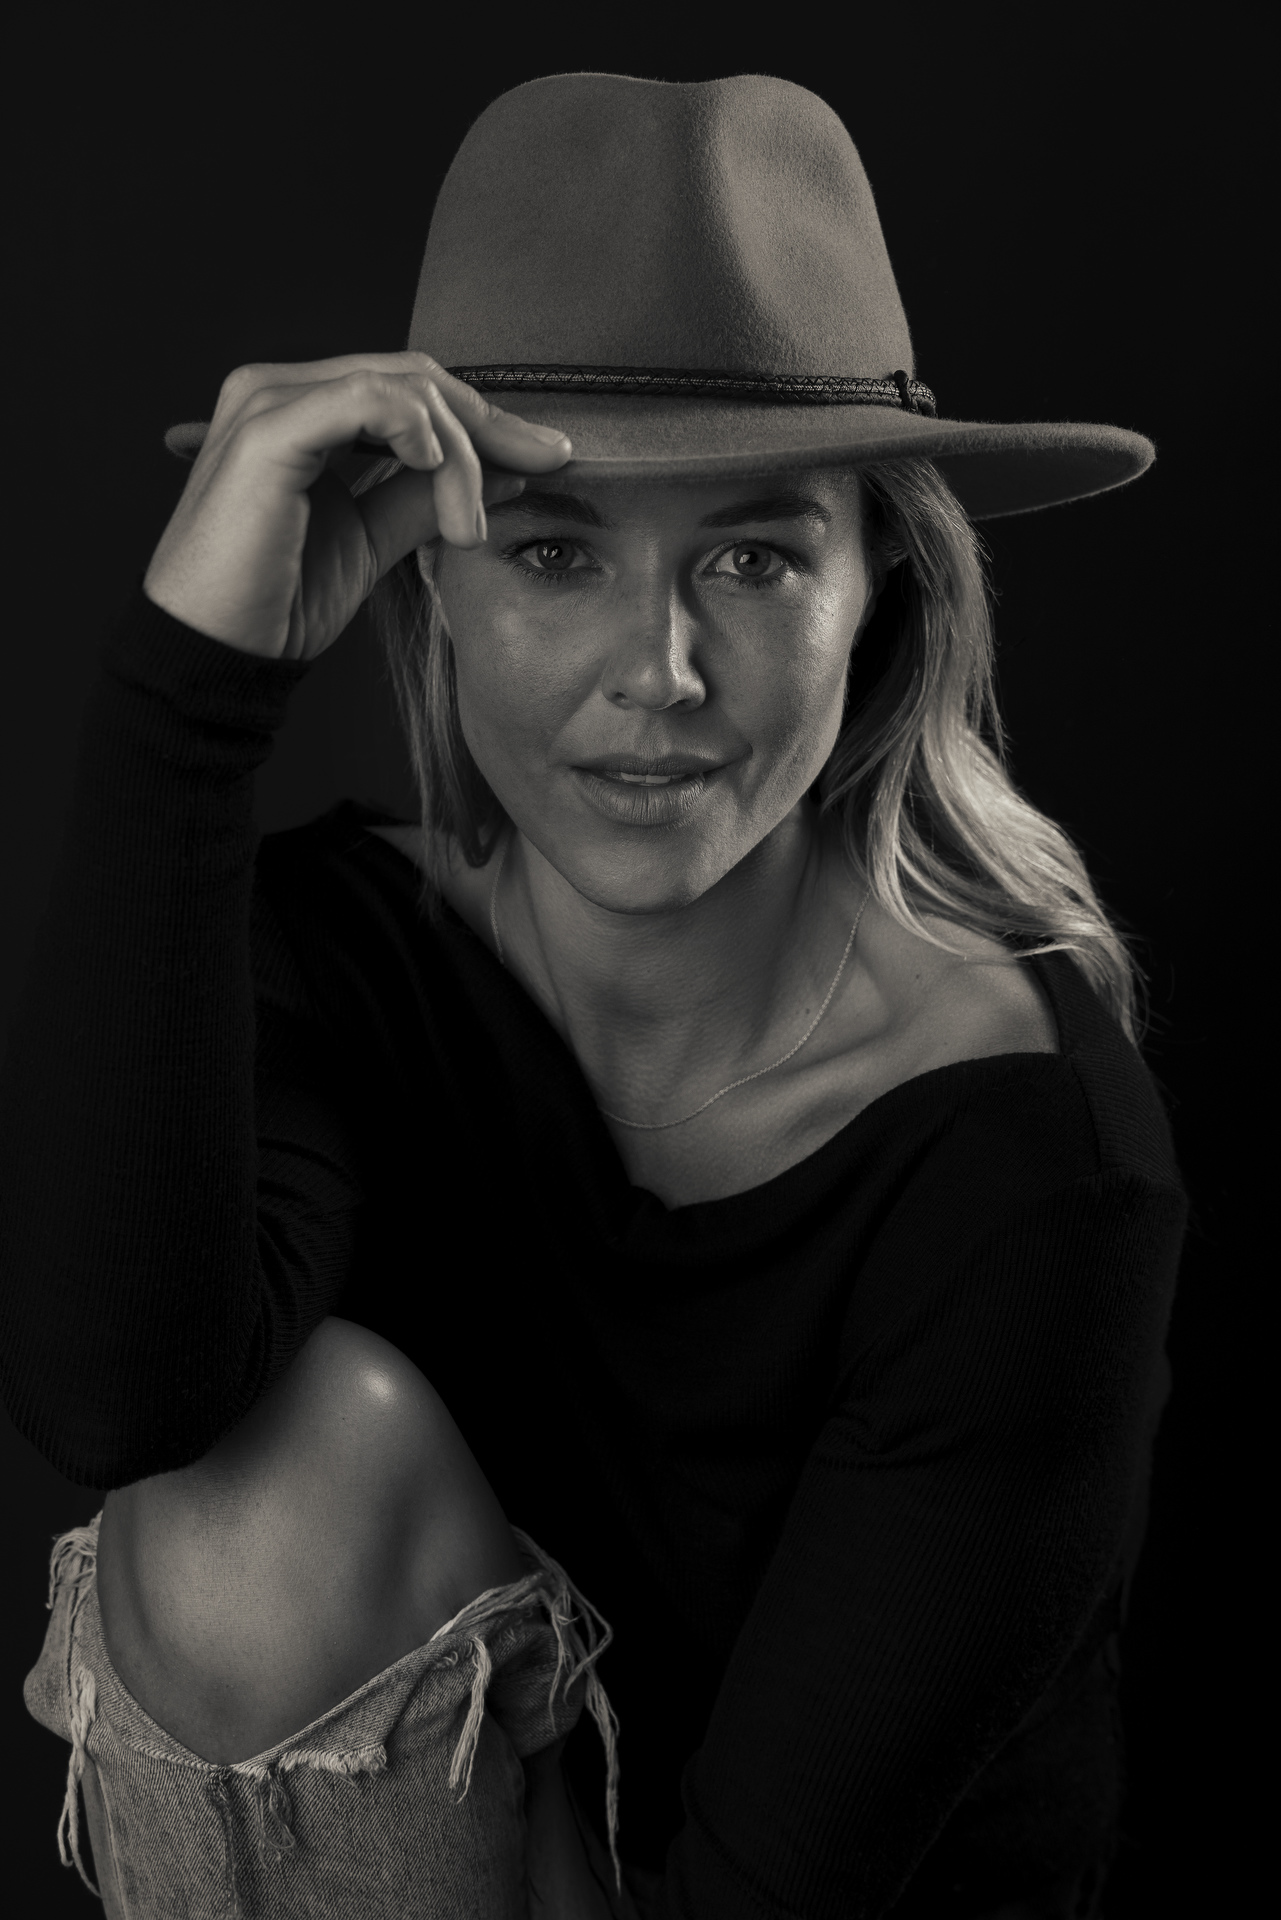 Sydney Portrait Photographer, Personal Branding, Head Shots, Corporate Photography, Actor, Reality Tv, Cinema, Movies, Blockbuster, Cowboy, Cowgirl